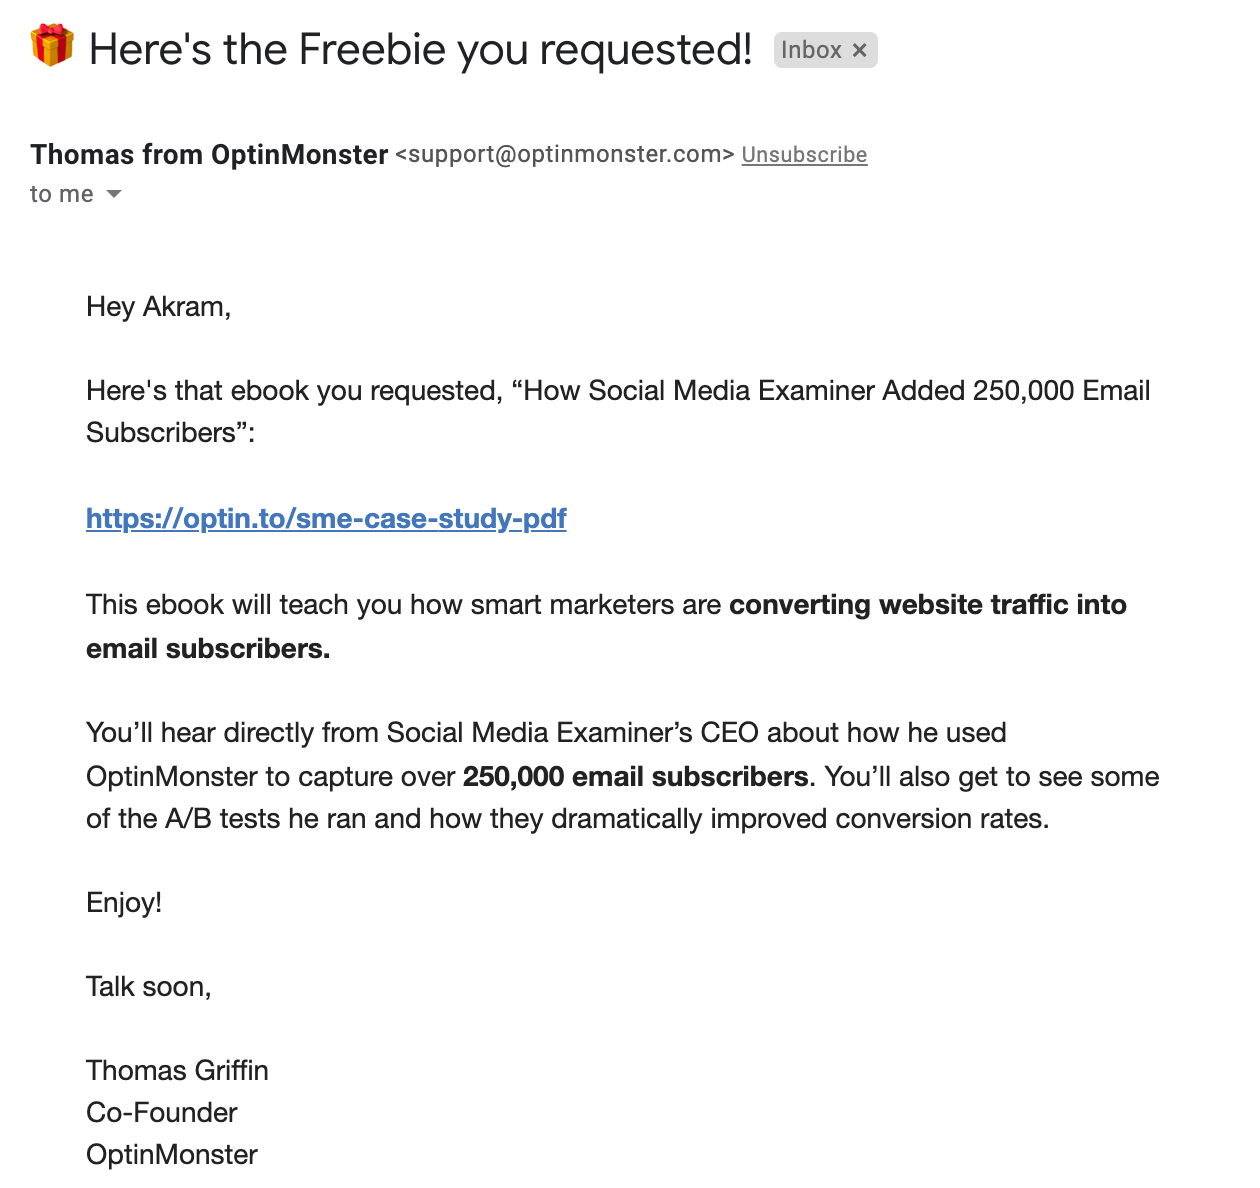 example of an automated email used as lead magnet